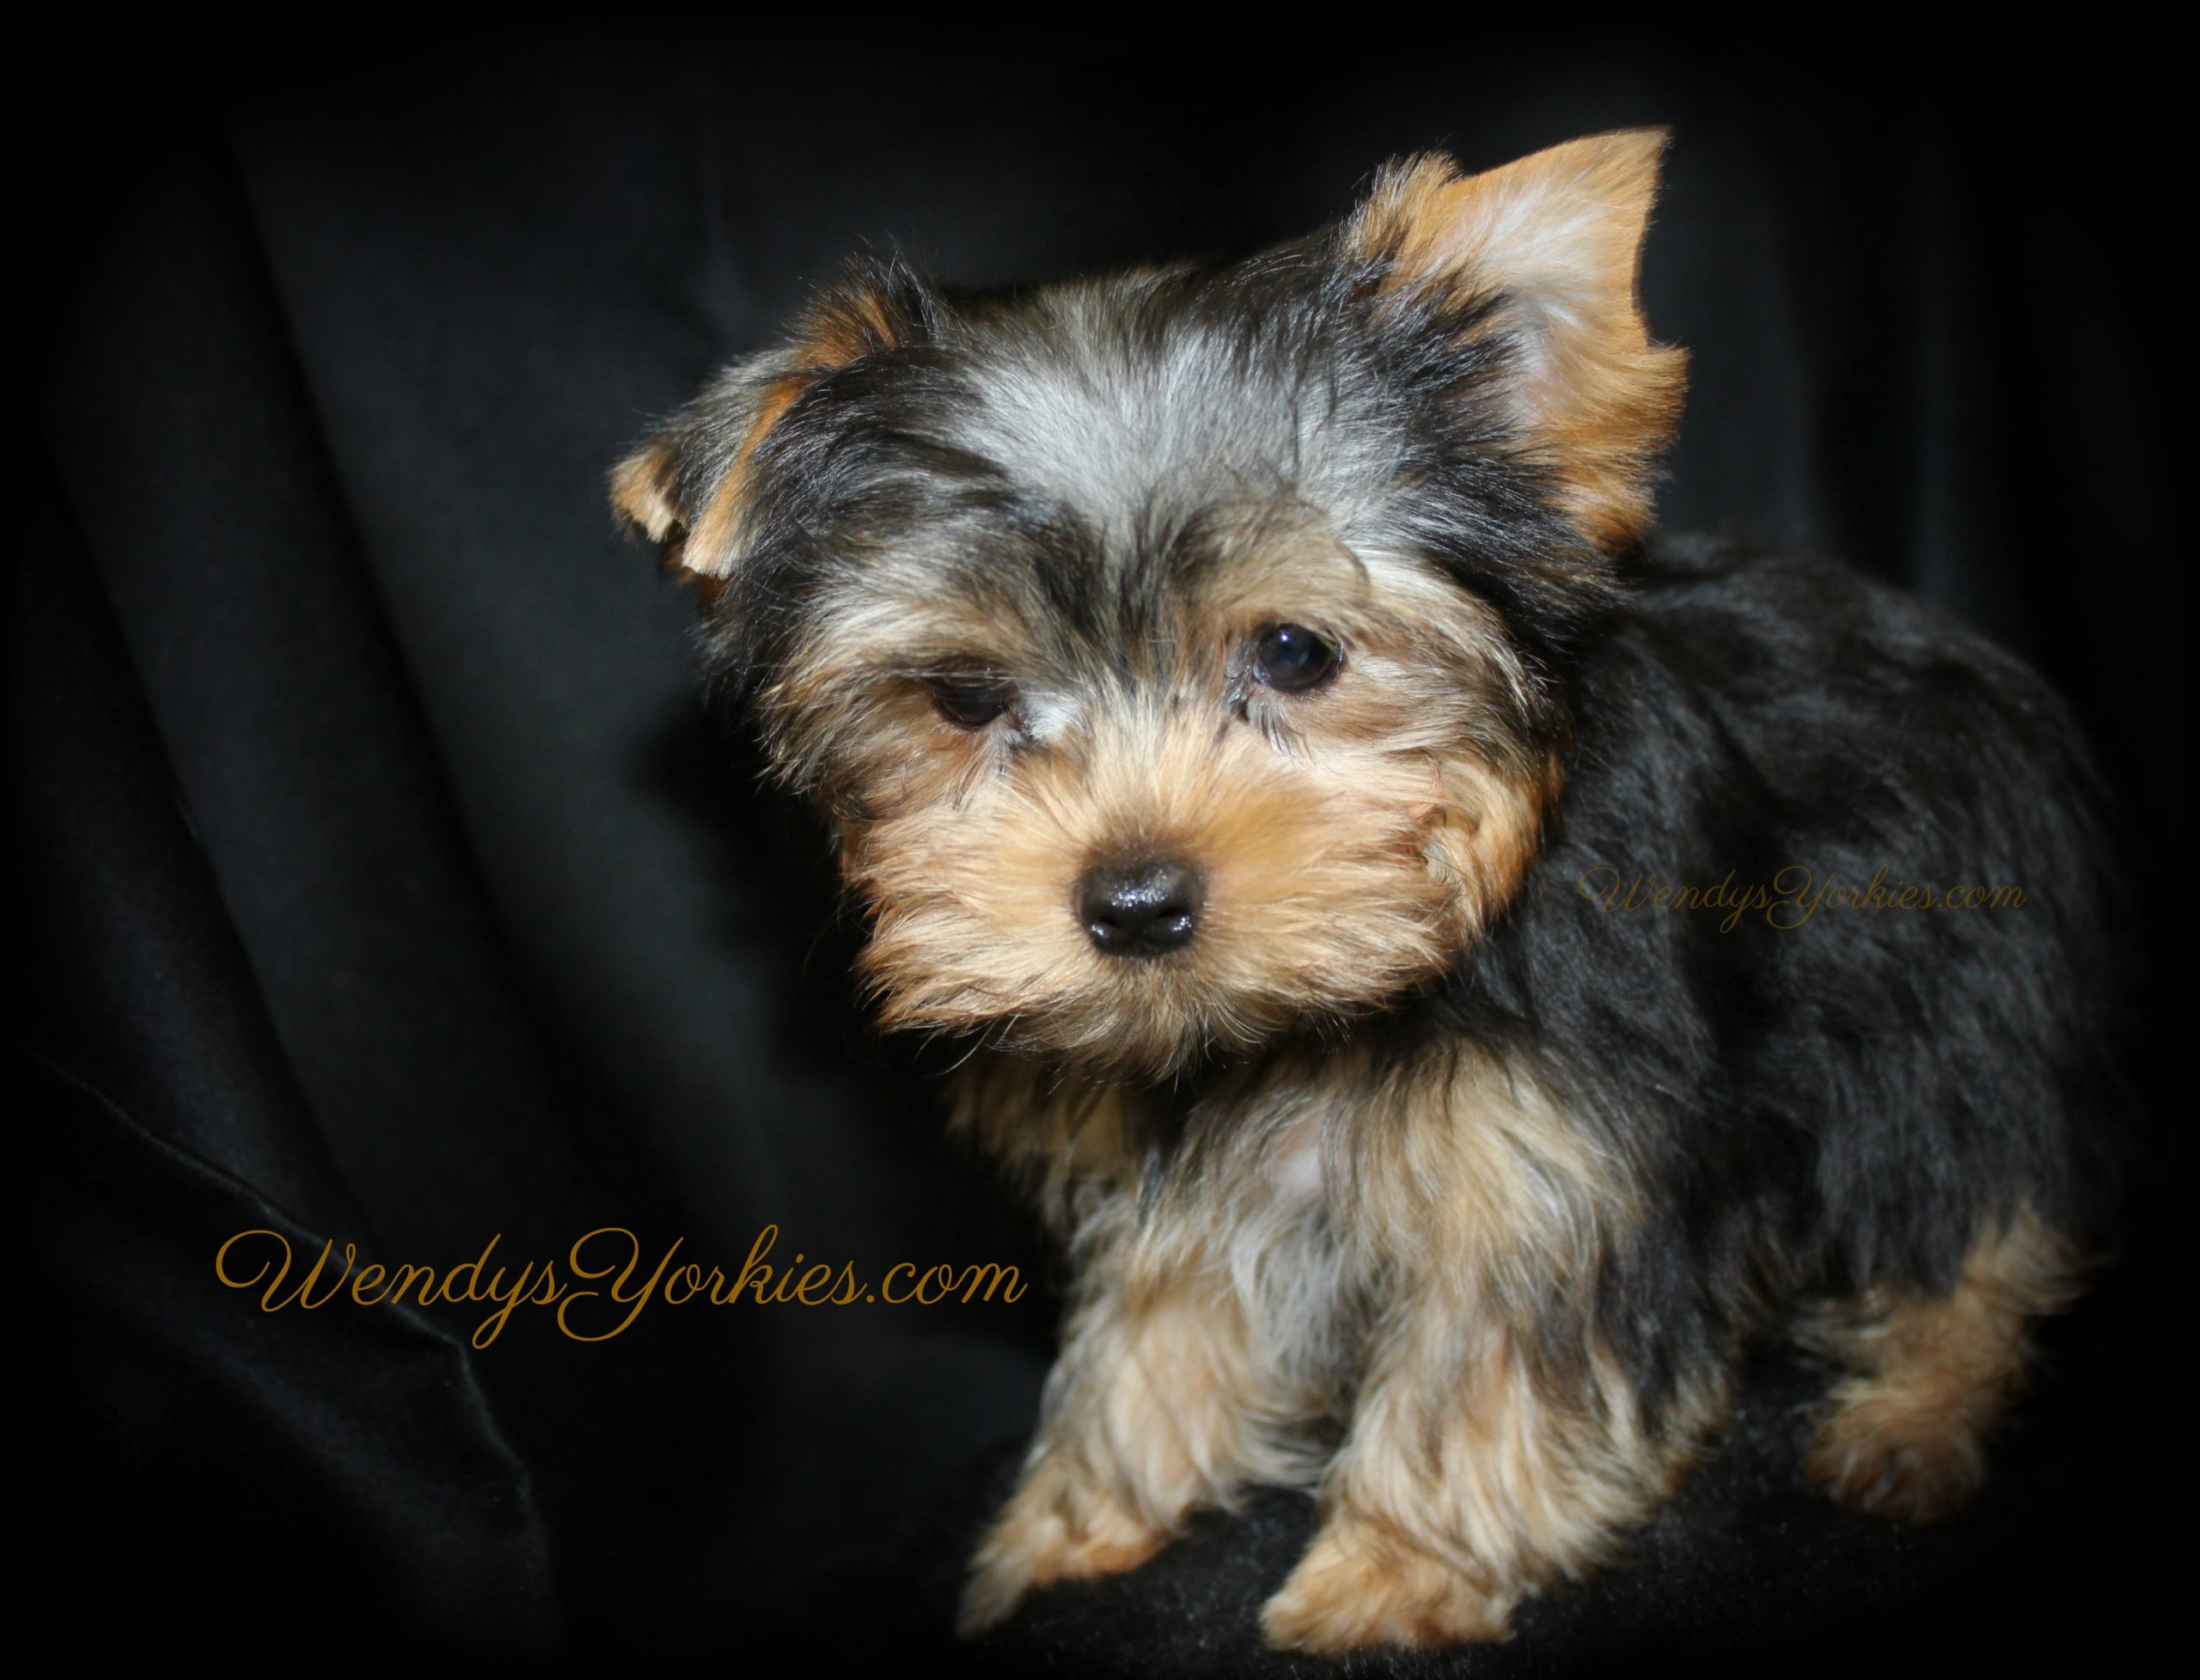 Yorkie puppy breeder, Ritz, WendysYorkies.com